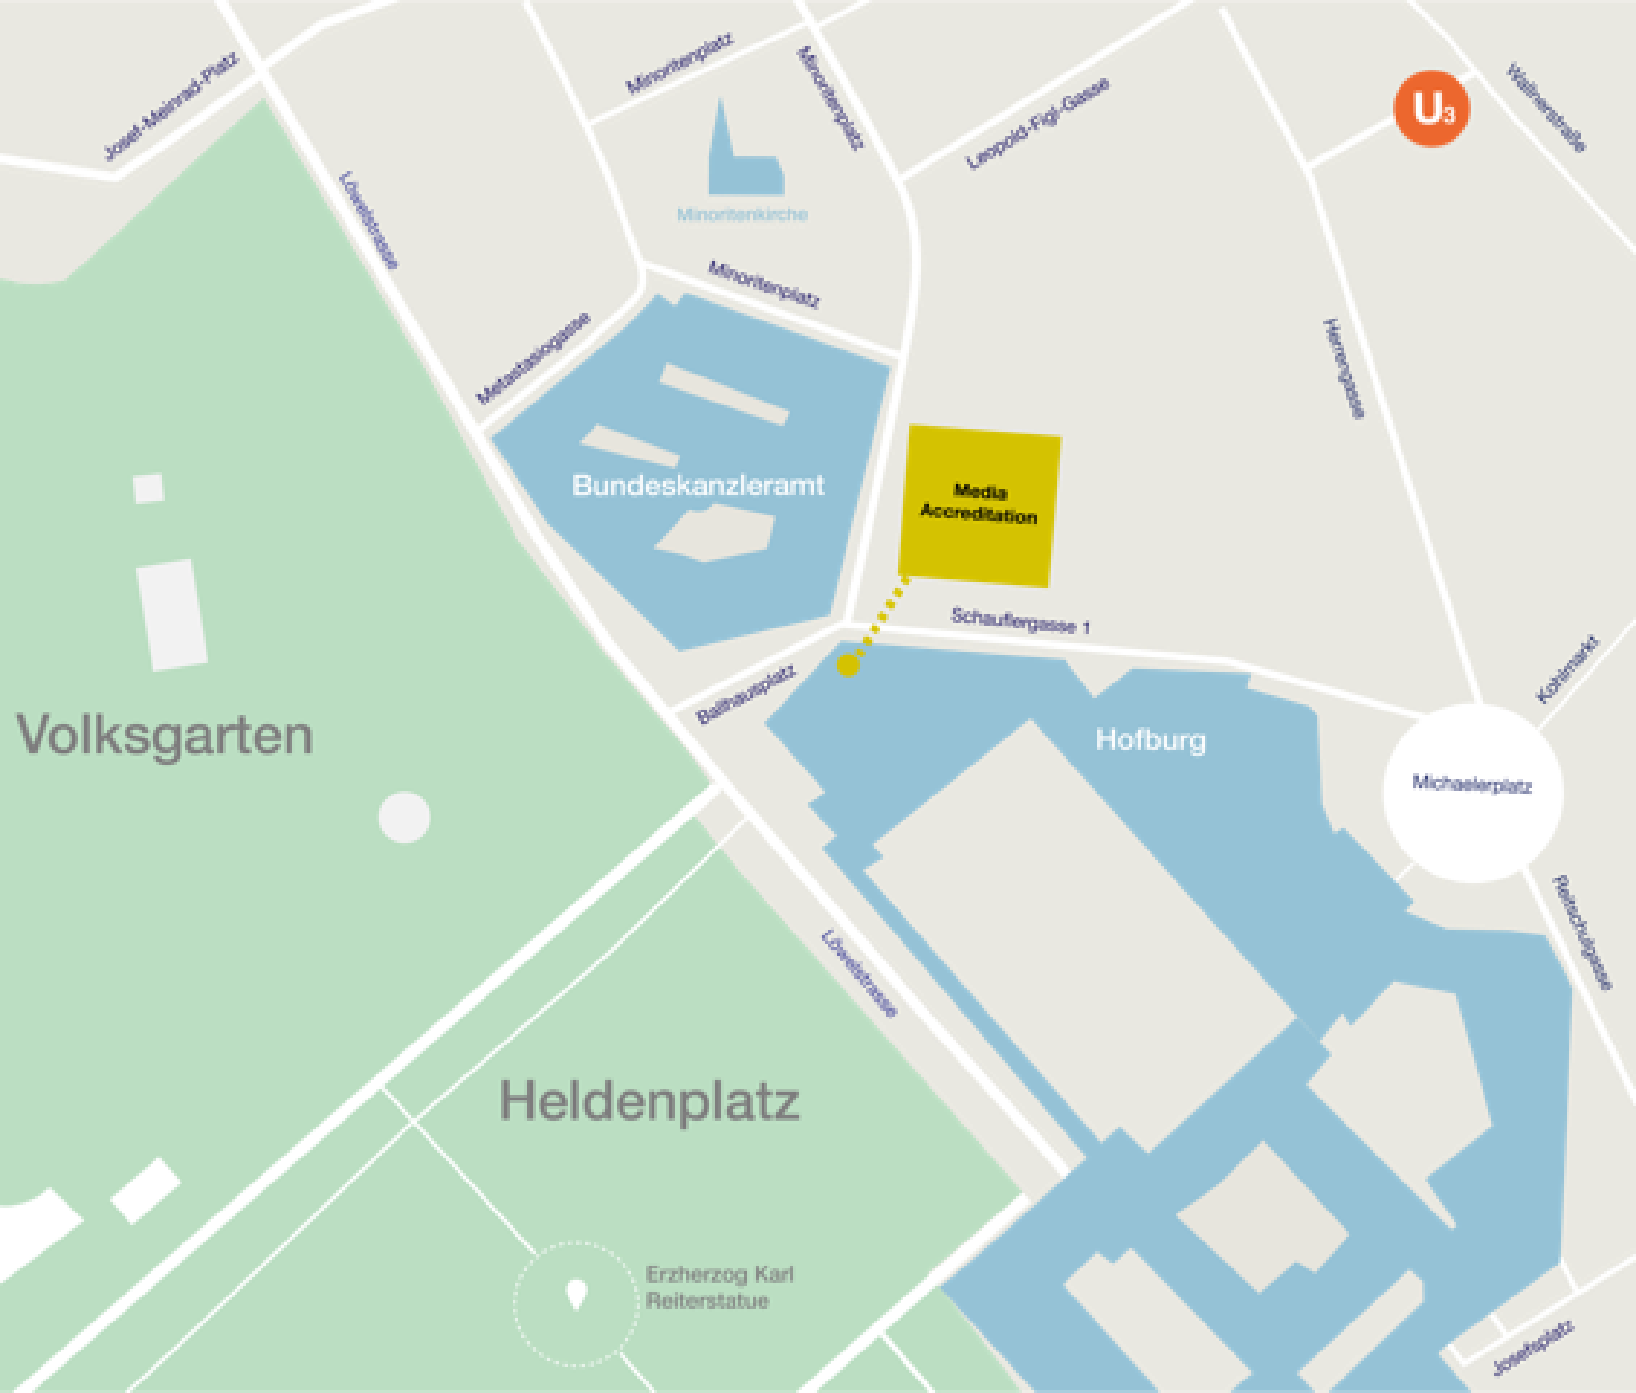 Access map to media accrediation, Schauflergasse